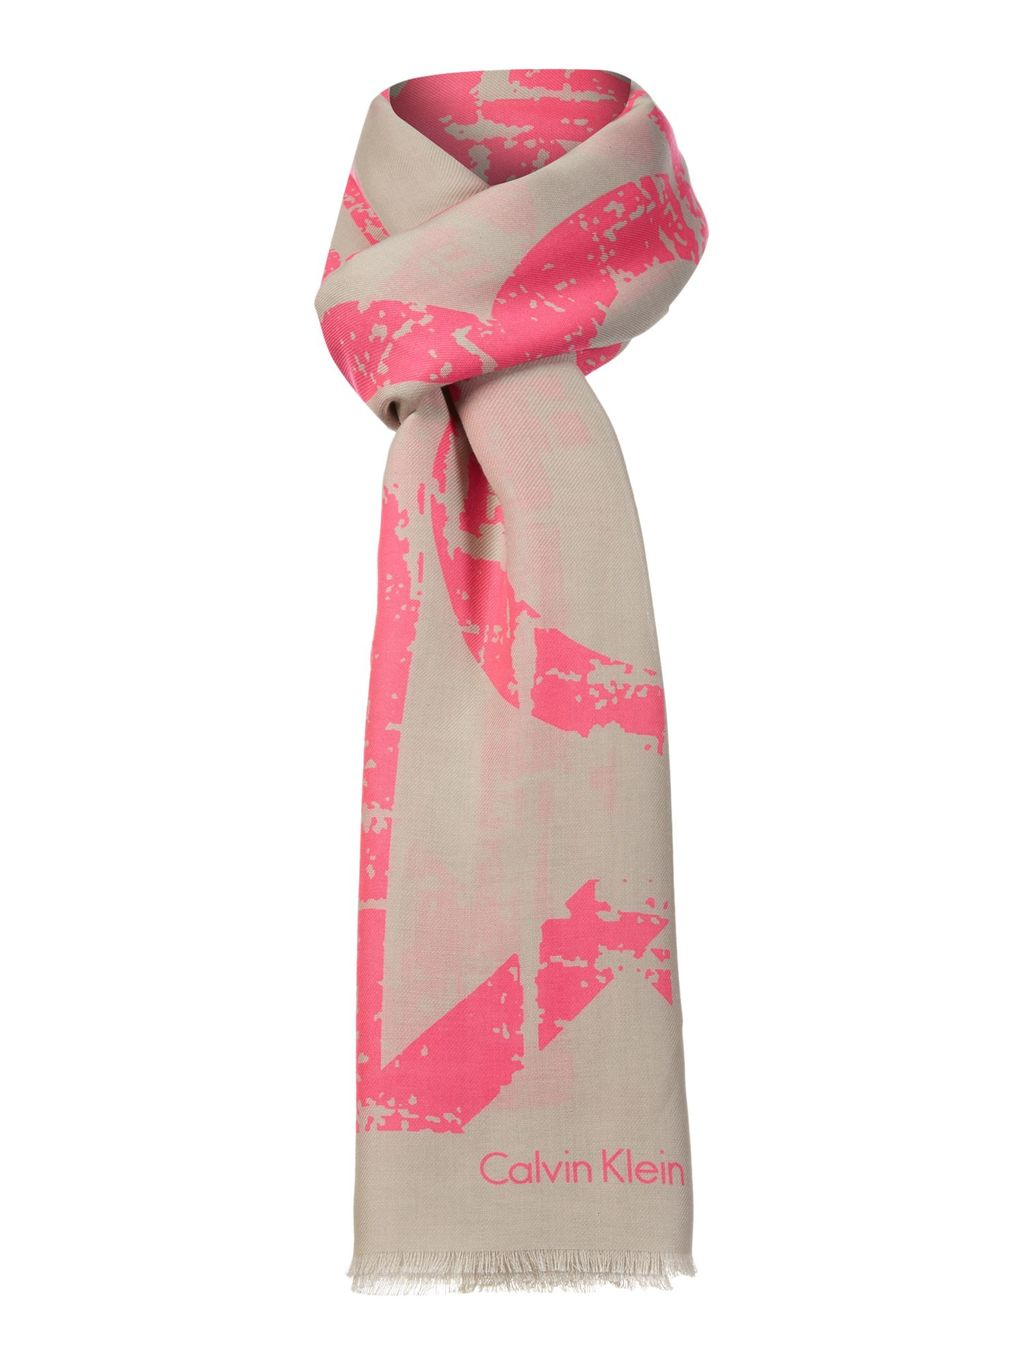 Neon Scarf, Neutral - predominant colour: pink; secondary colour: stone; occasions: casual; type of pattern: standard; style: regular; size: standard; material: fabric; pattern: patterned/print; season: a/w 2015; wardrobe: highlight